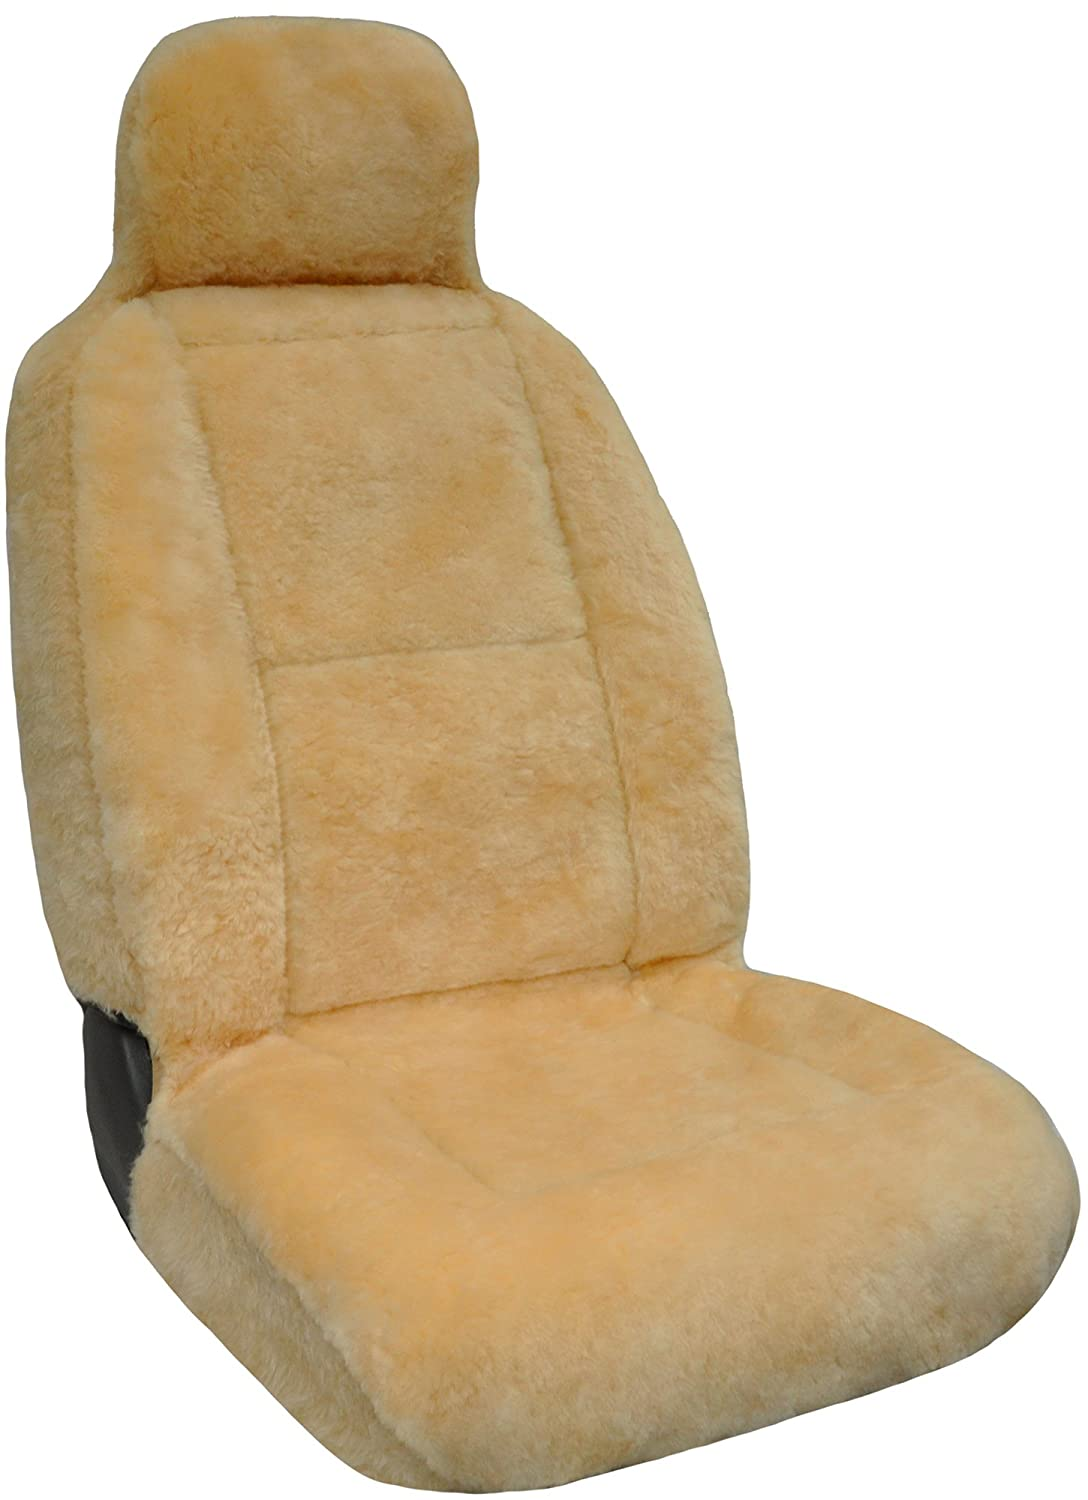 Eurow Luxury Sheepskin Seat Cover XL Design Comfortable Premium Pelt Champagne Eurow /& O/'Reilly Corp.